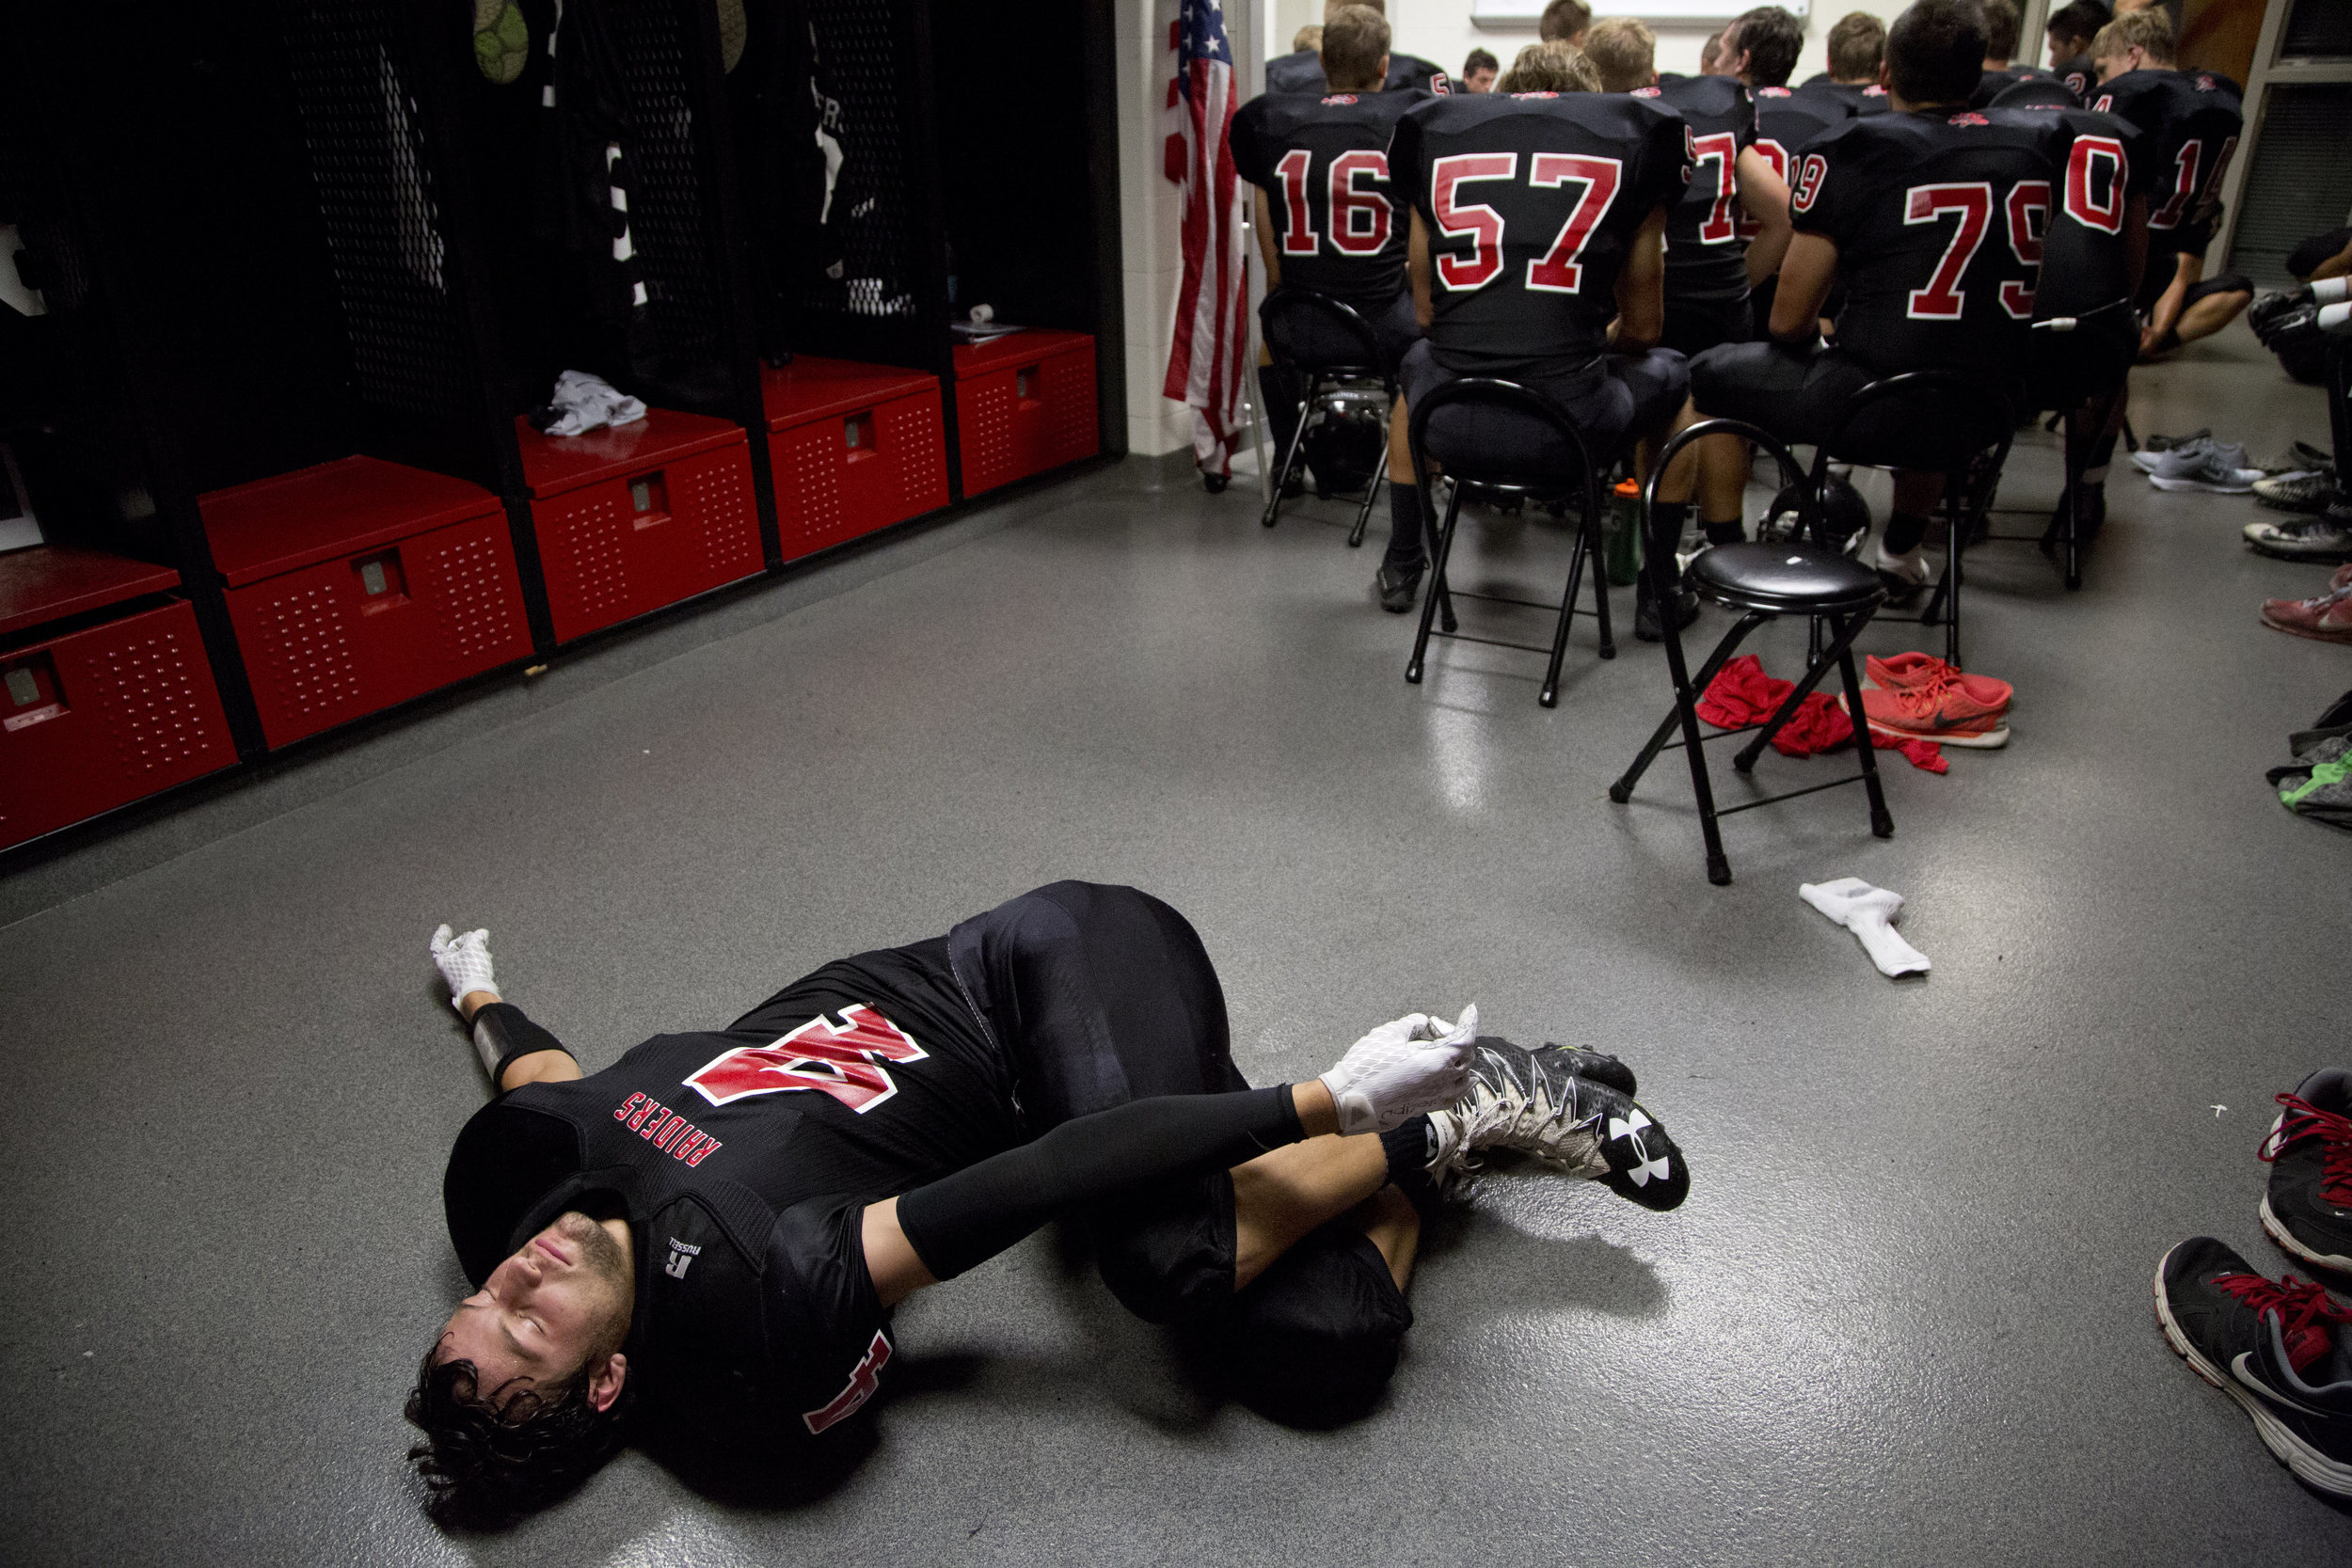 Southridge's Nolan O'Brien stretched in the locker room before the game against Corydon Central at Southridge High School in Huntingburg on Friday. The Raiders beat the Panthers 21-14.